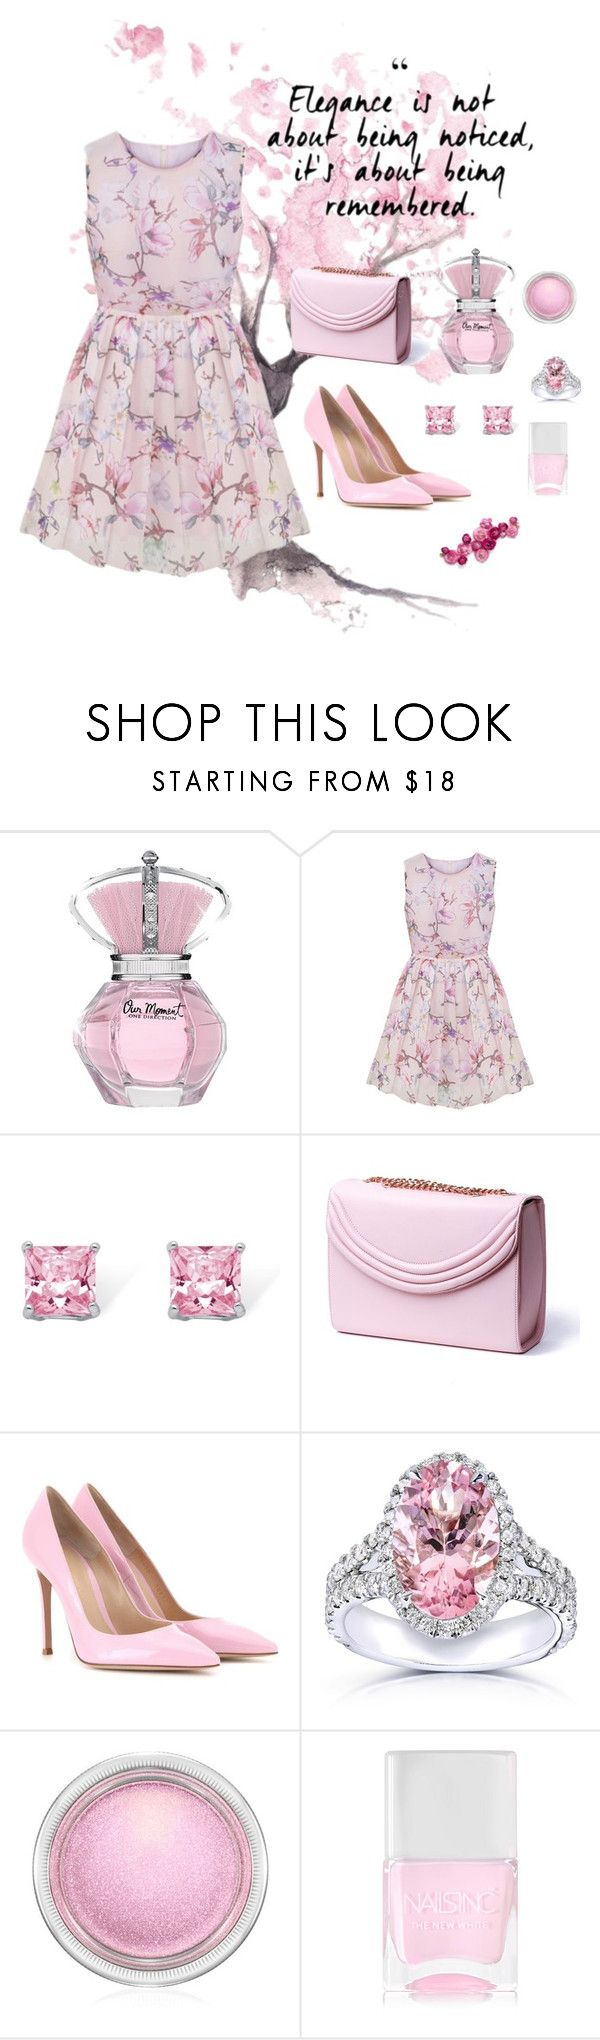 Glamorous bamboo fencing mode miami tropical landscape image ideas -  Spring Into Summer By Arijanagetos55 Liked On Polyvore Featuring Wall